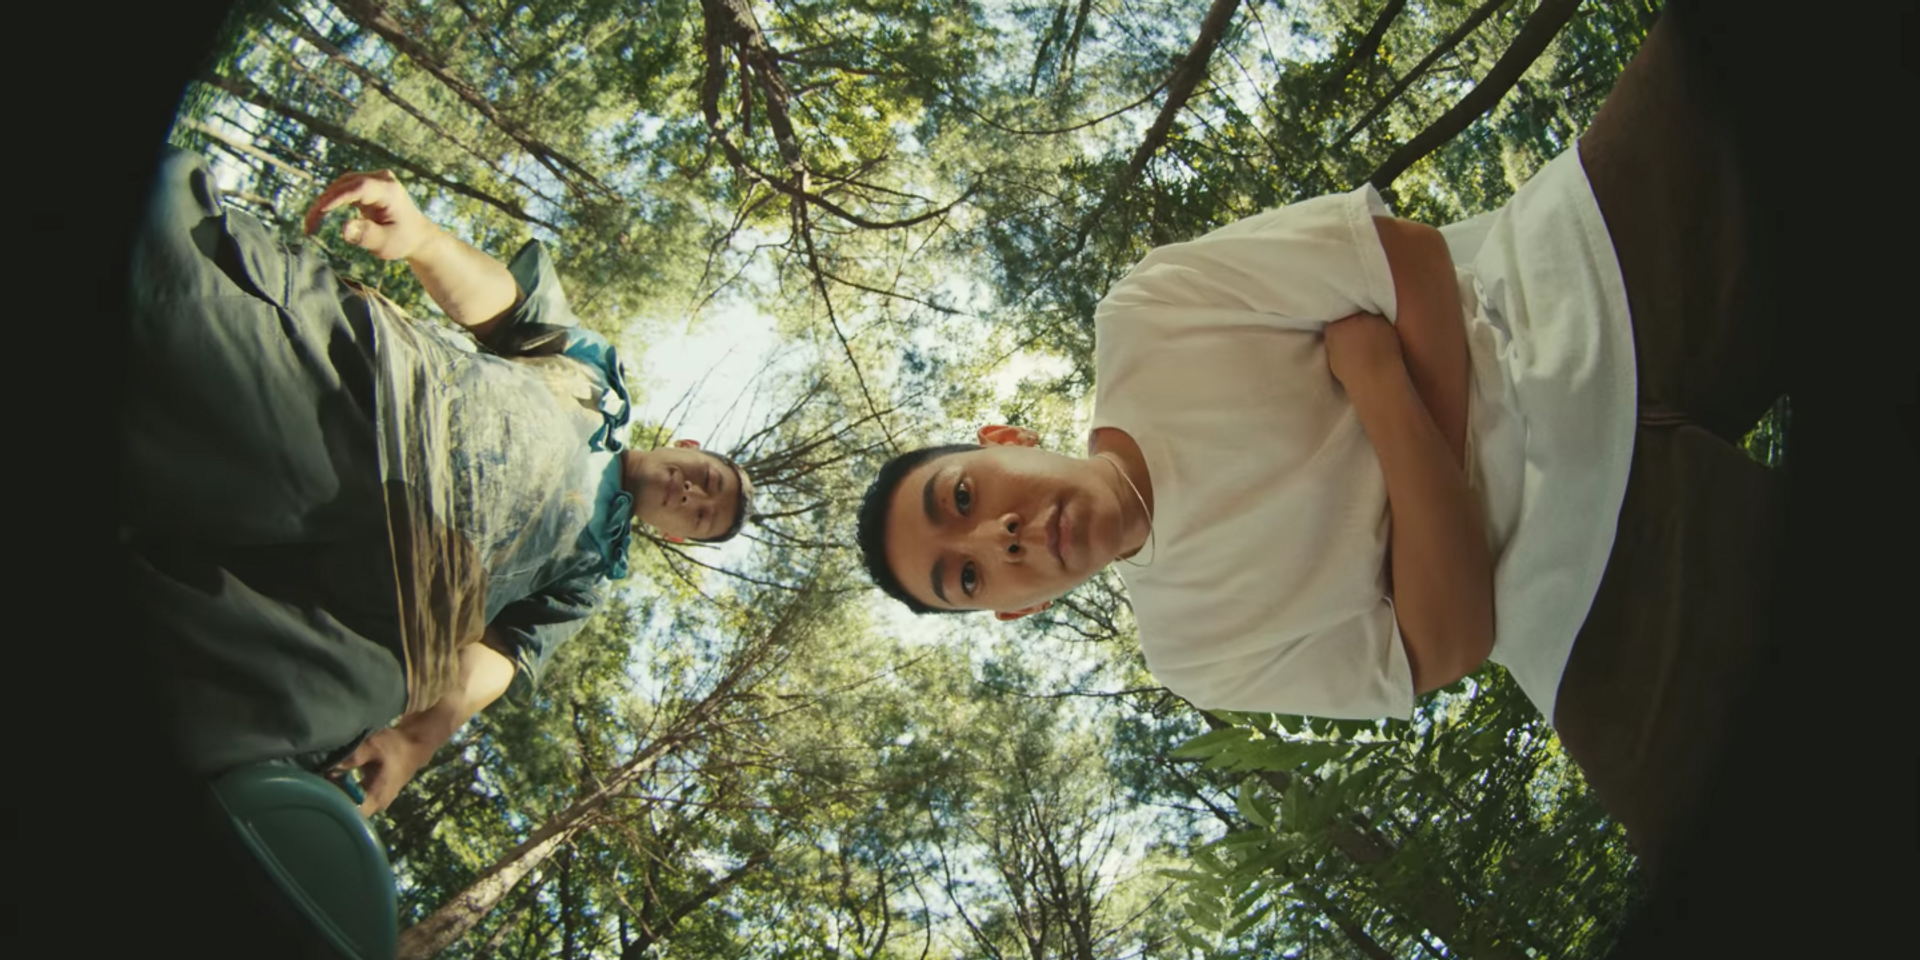 Loco teams up with george for new collaborative single 'Just Like This' – watch